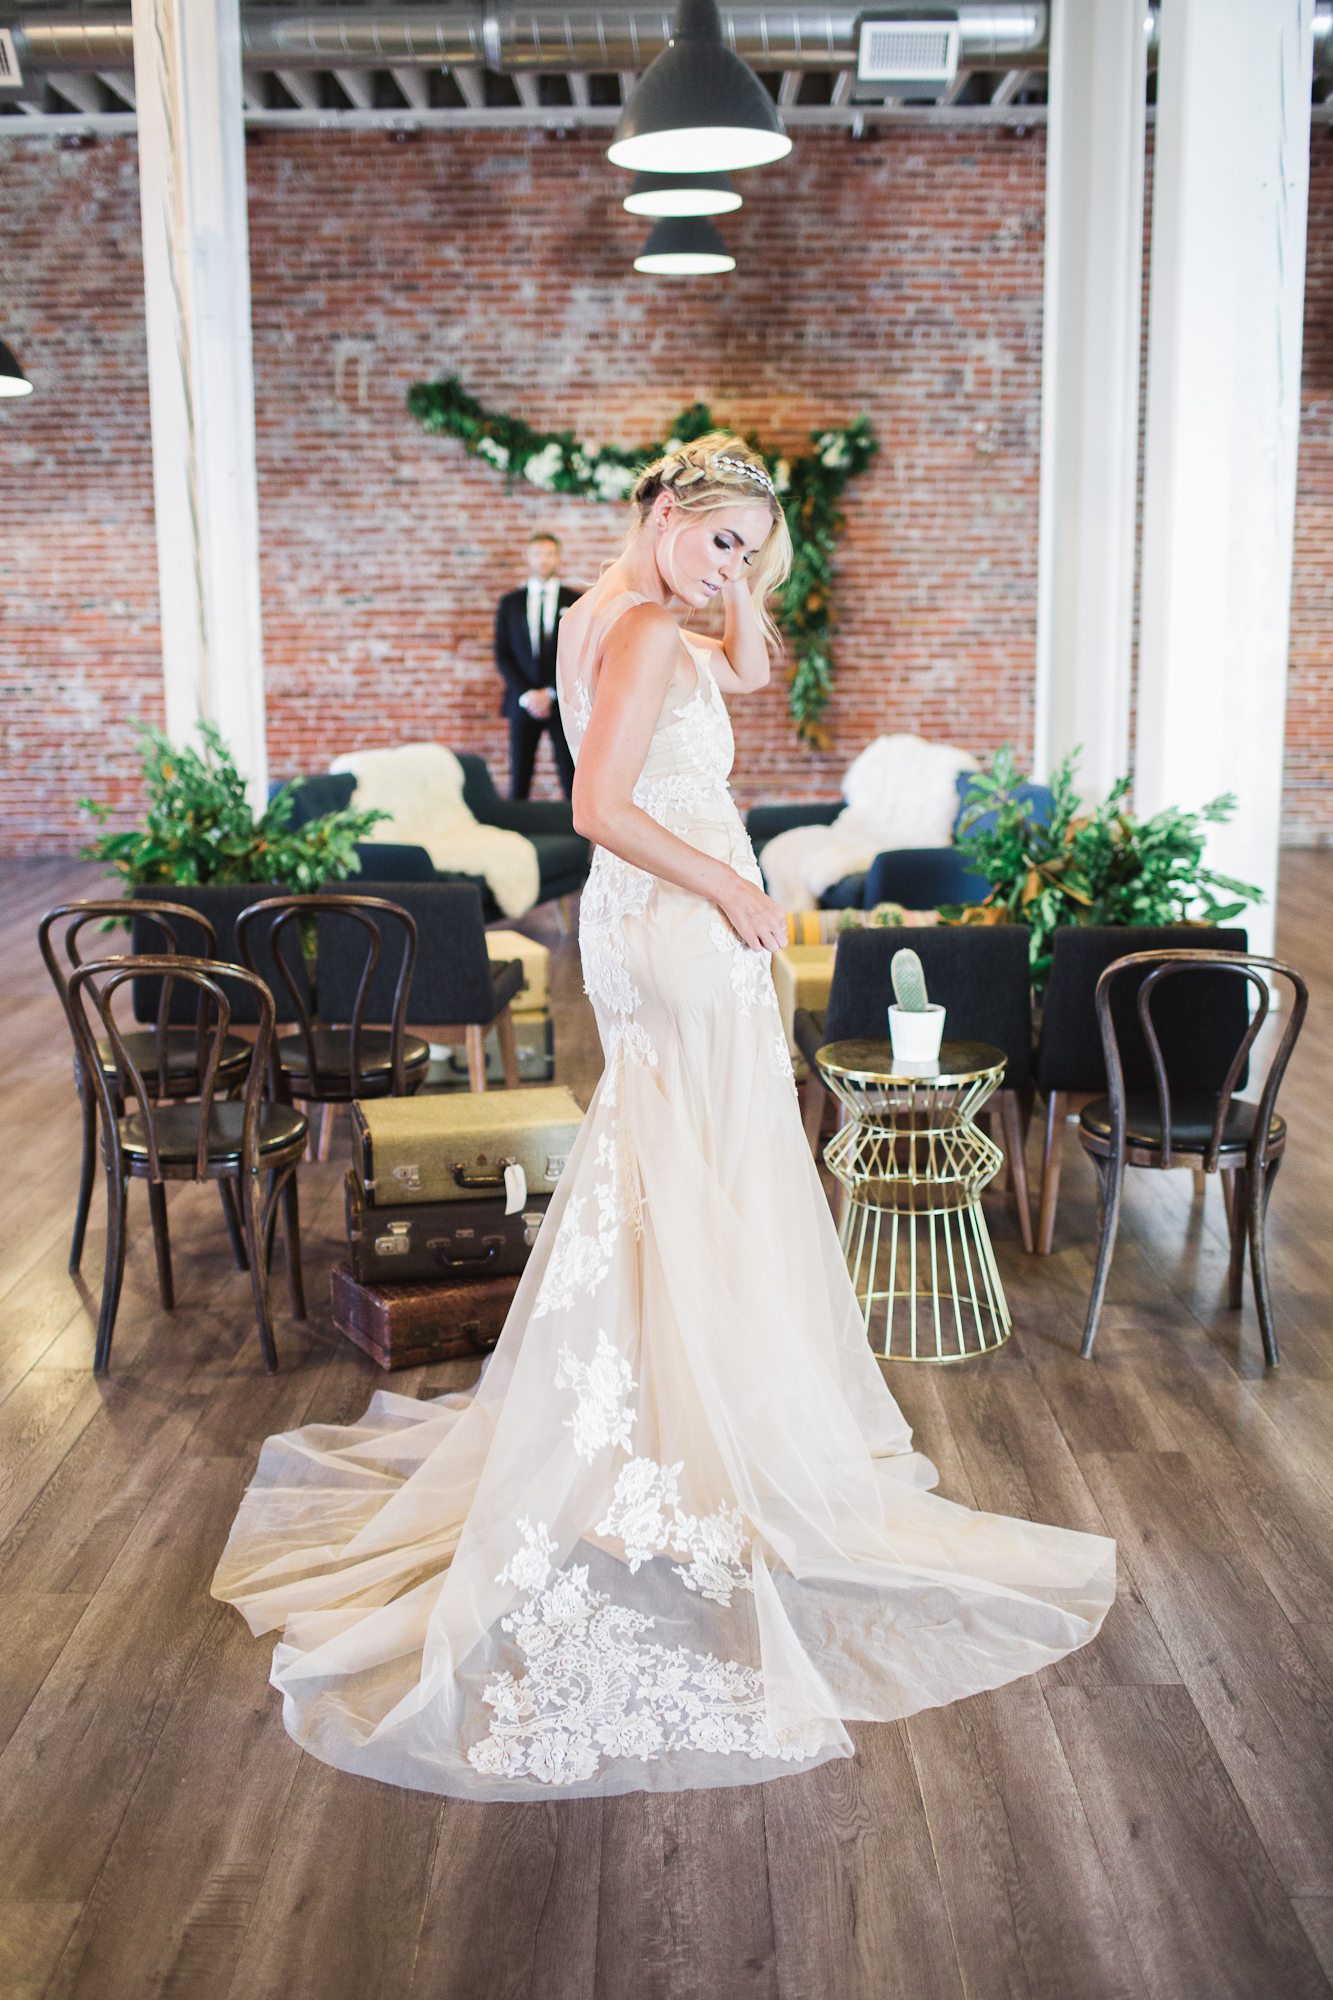 Lezu's dresses were so breath-taking. If only I could get married again :)